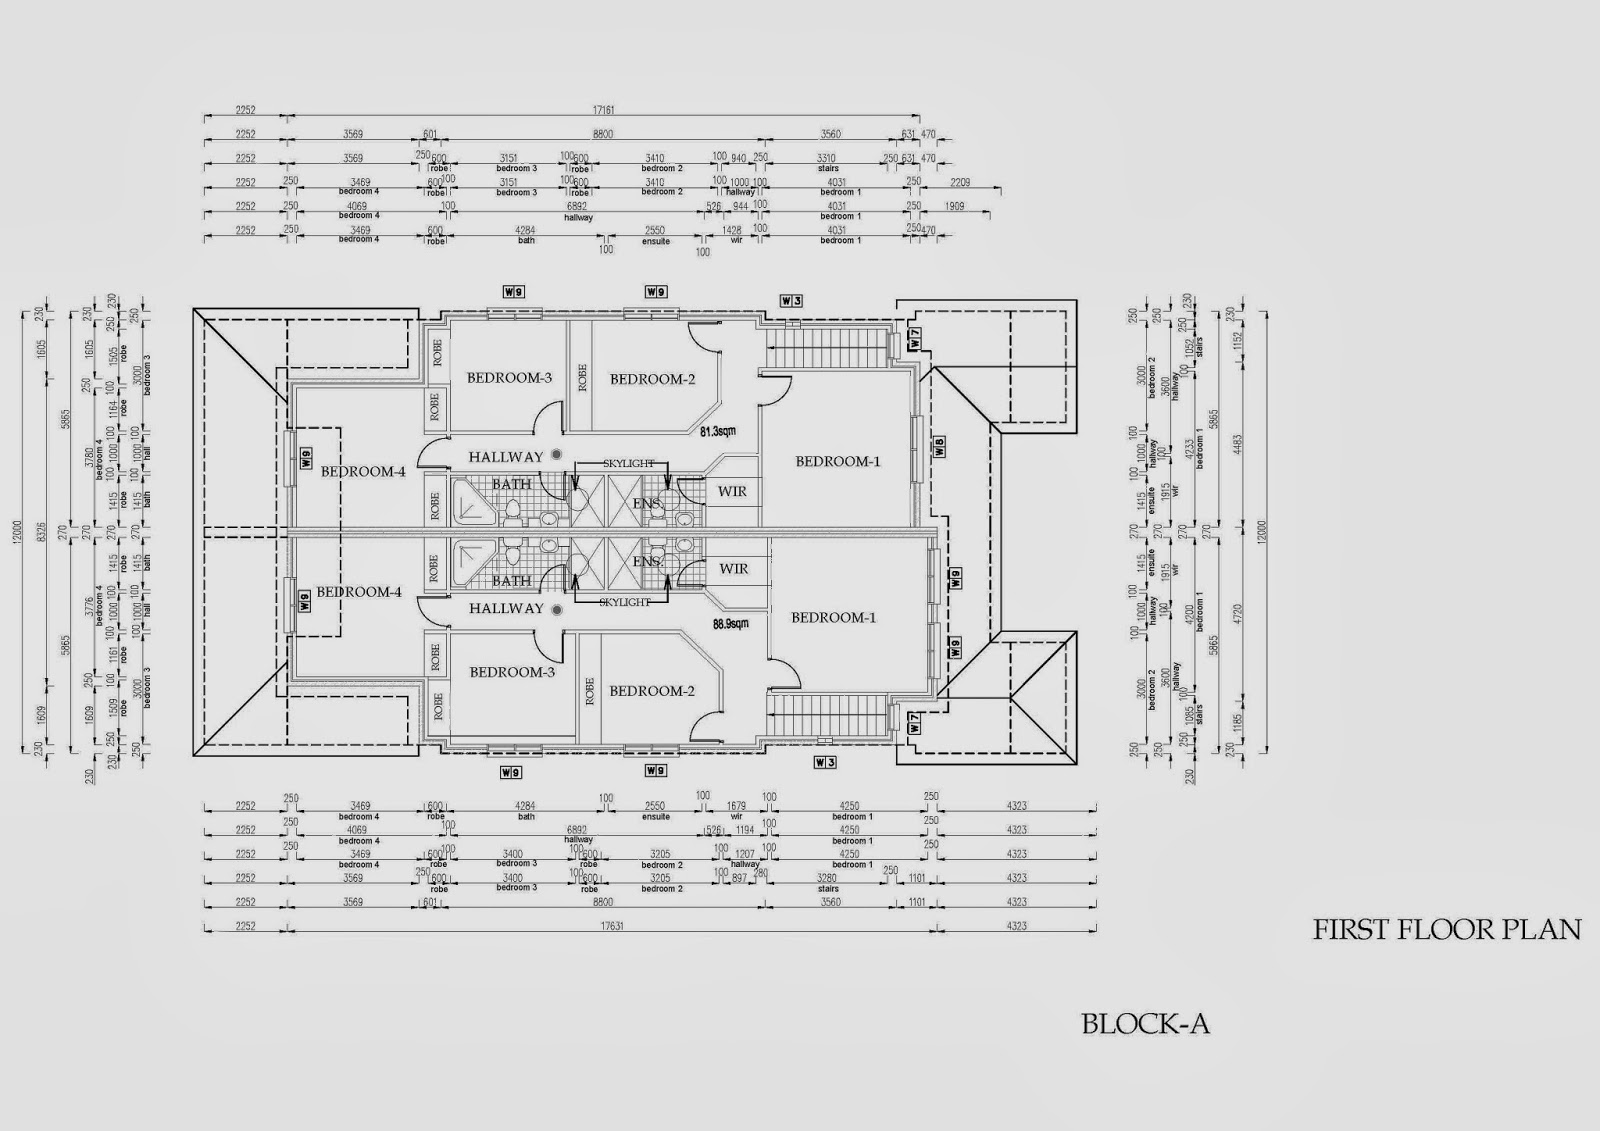 dream architectural site plan drawing 23 photo